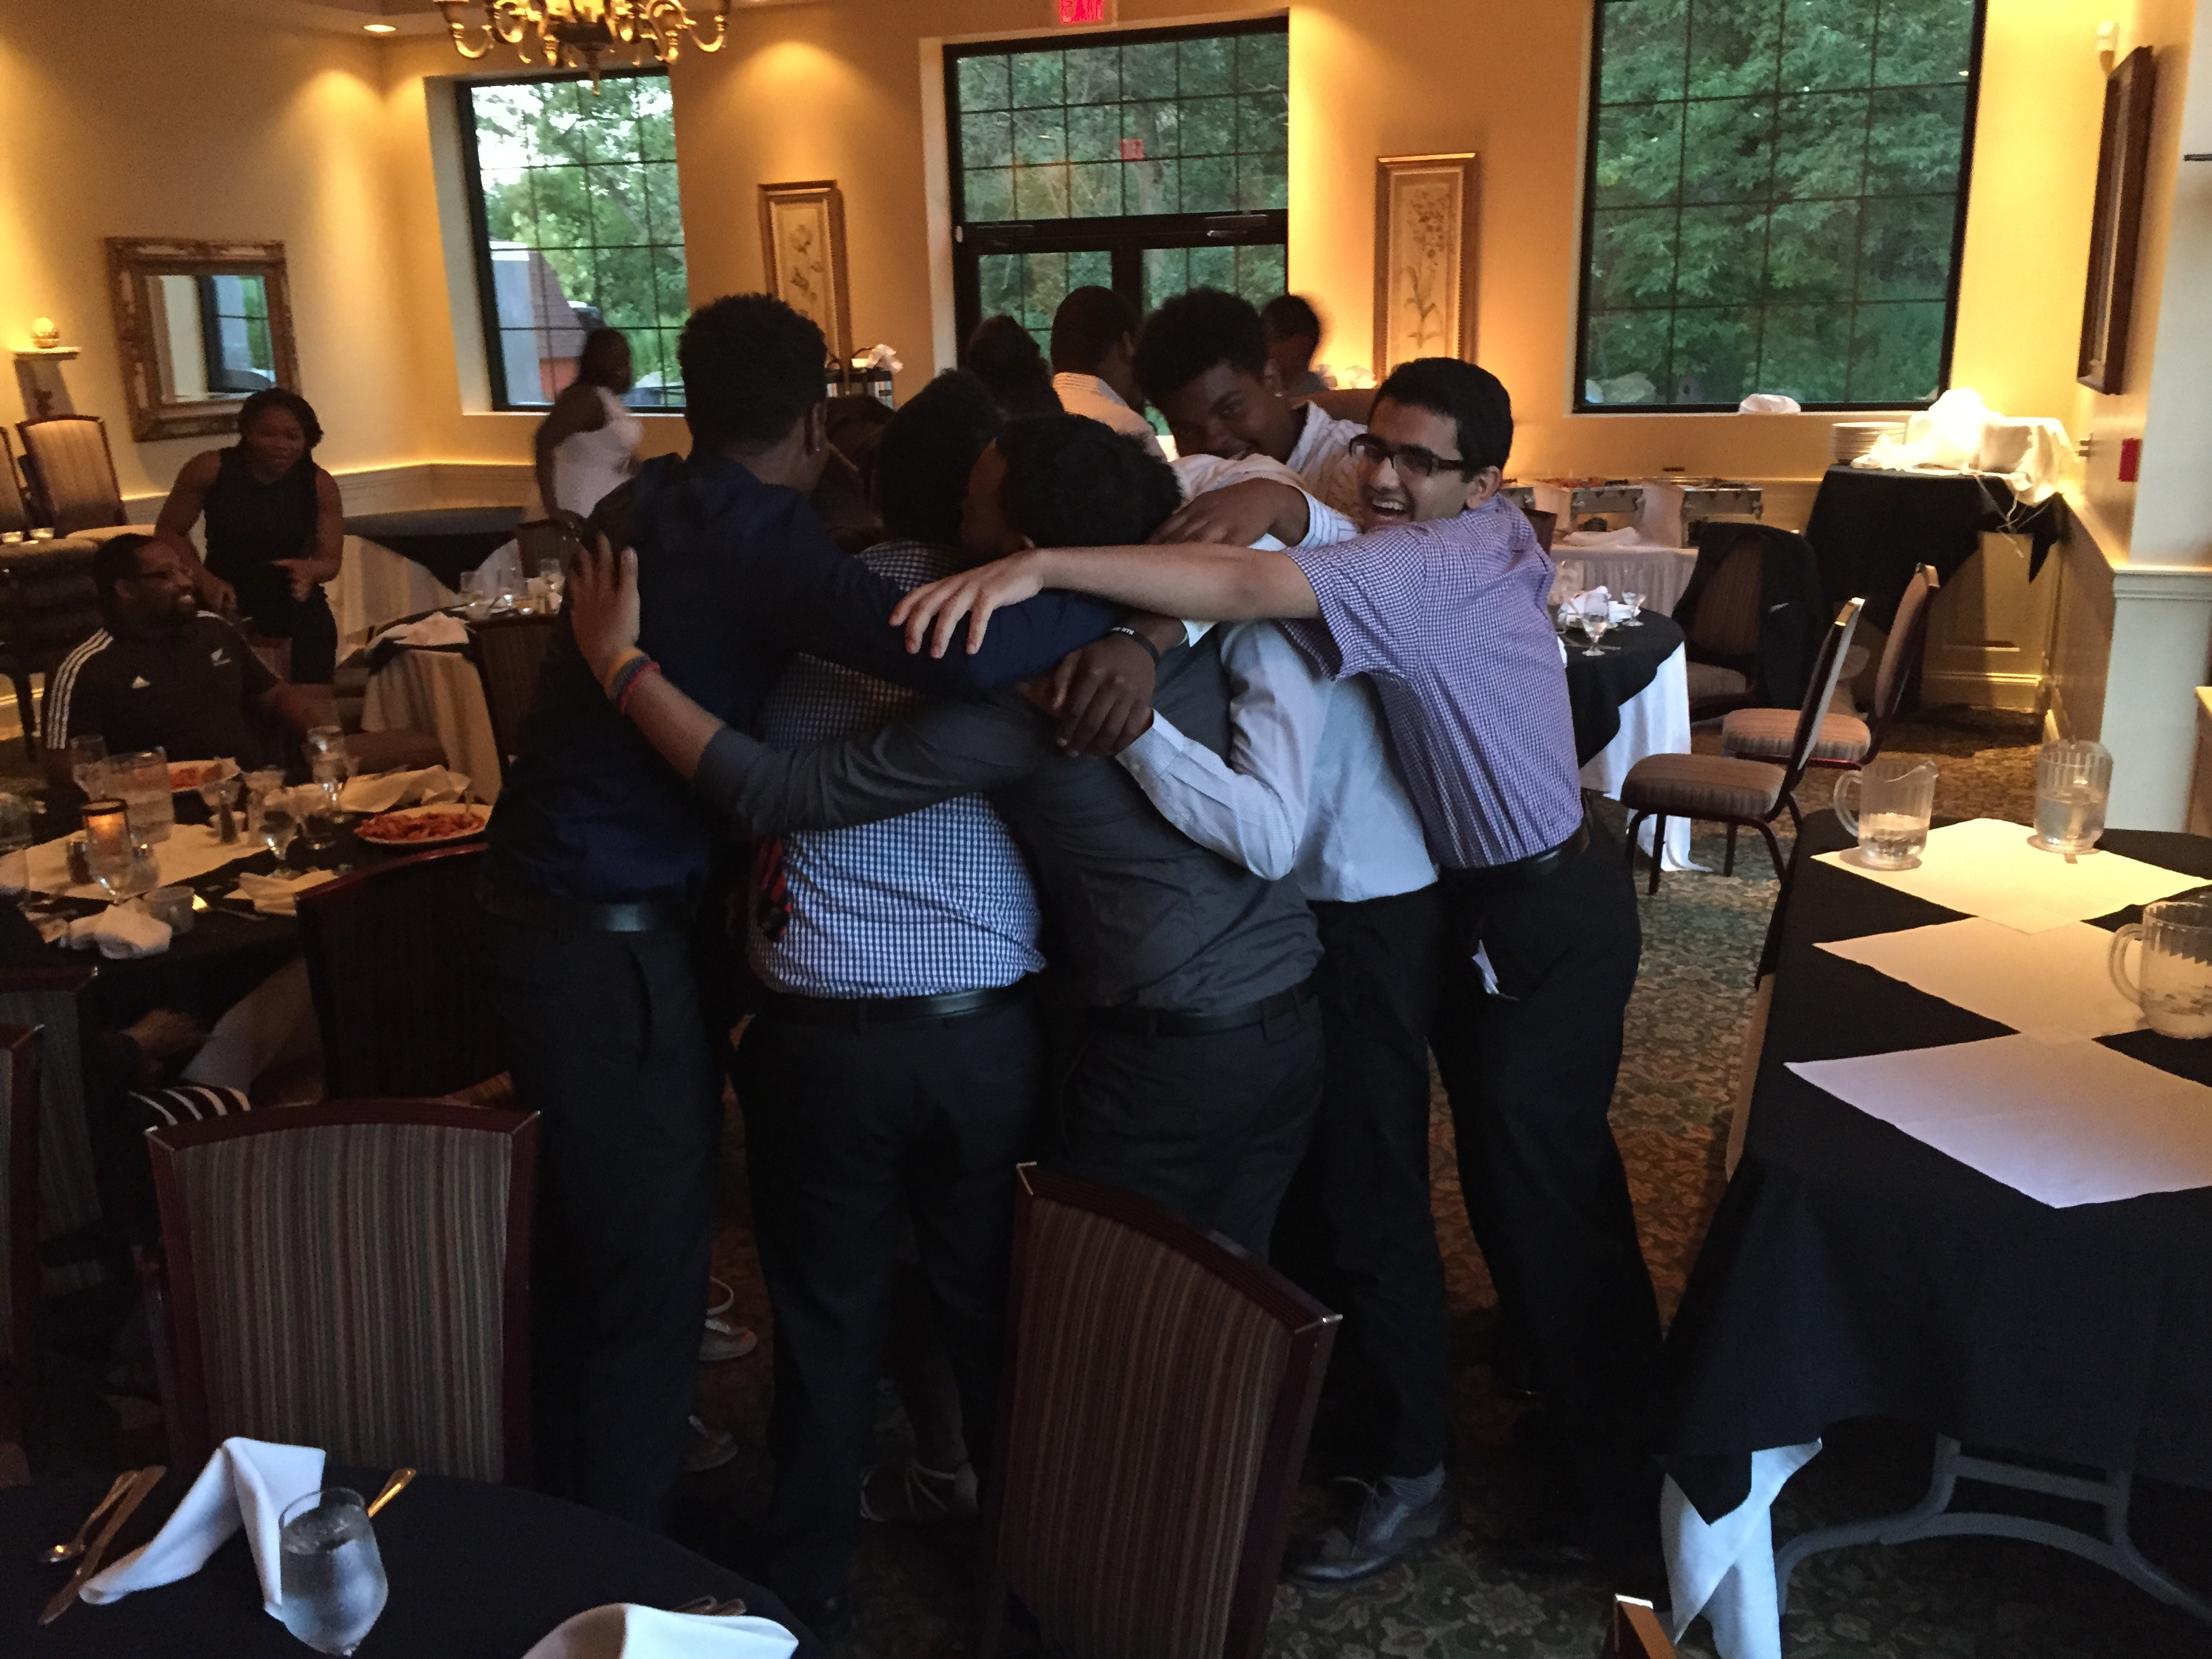 Summer Program 2015 comes to an end with a big hug